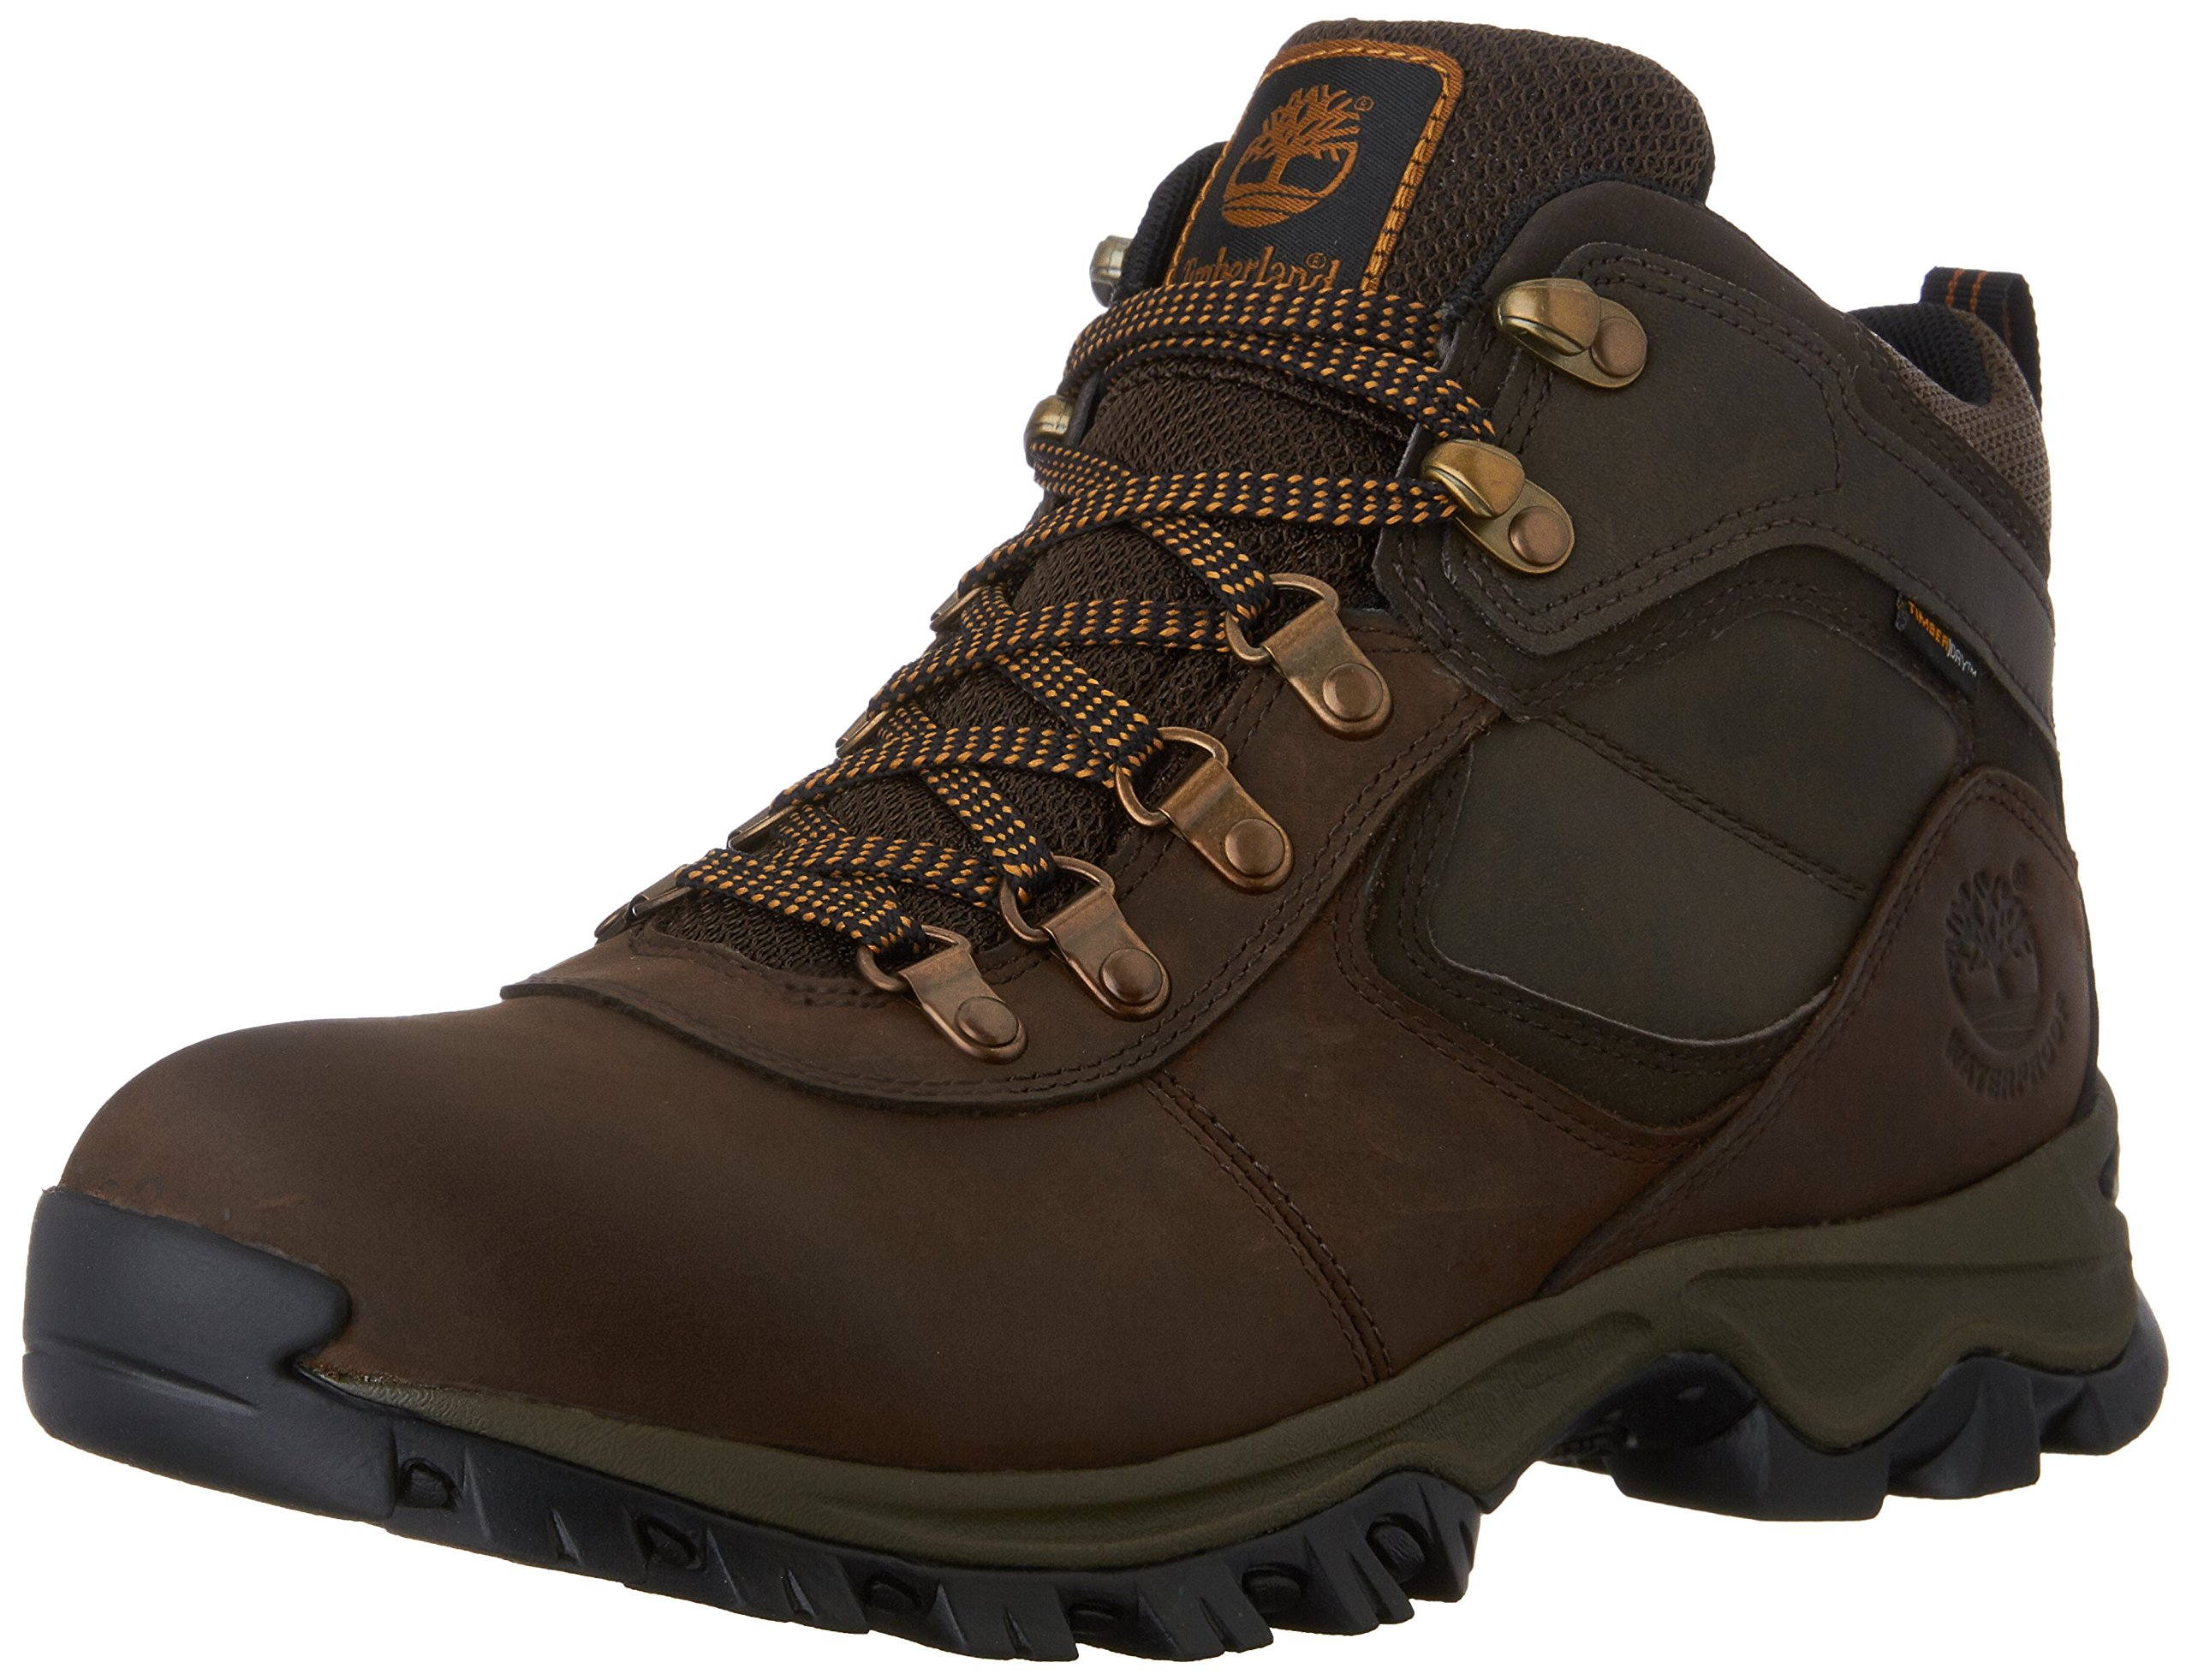 Timberland Men's Mt. Maddsen Hiker, Brown, 9.5 M US by Timberland